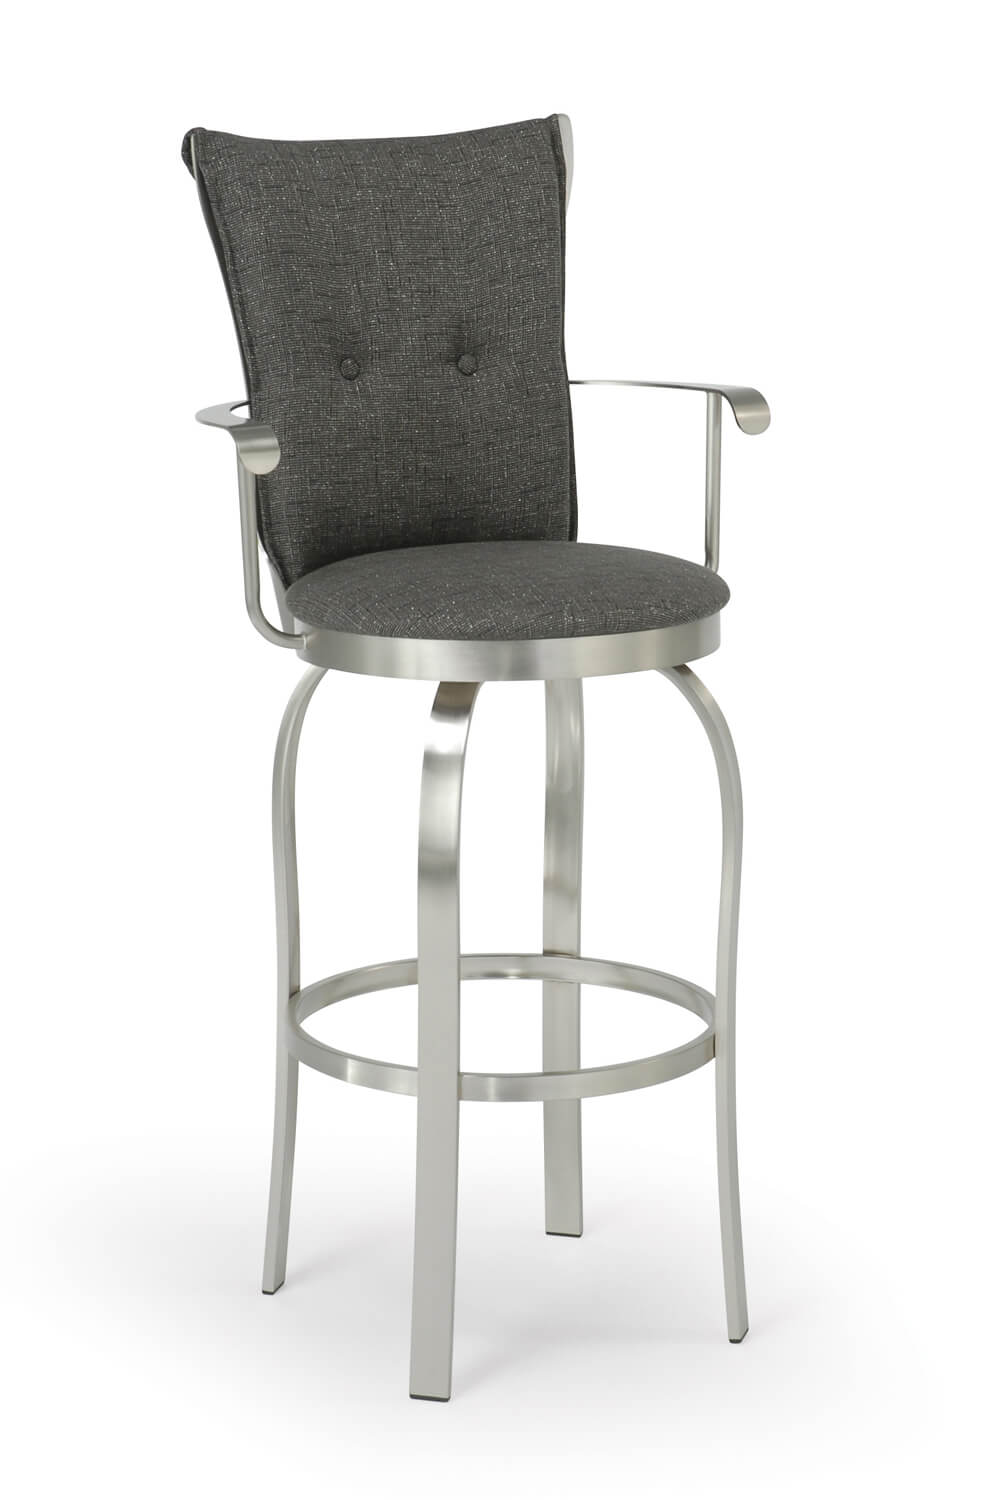 Trica Tuscany Swivel Stool W Arms Available In Leather